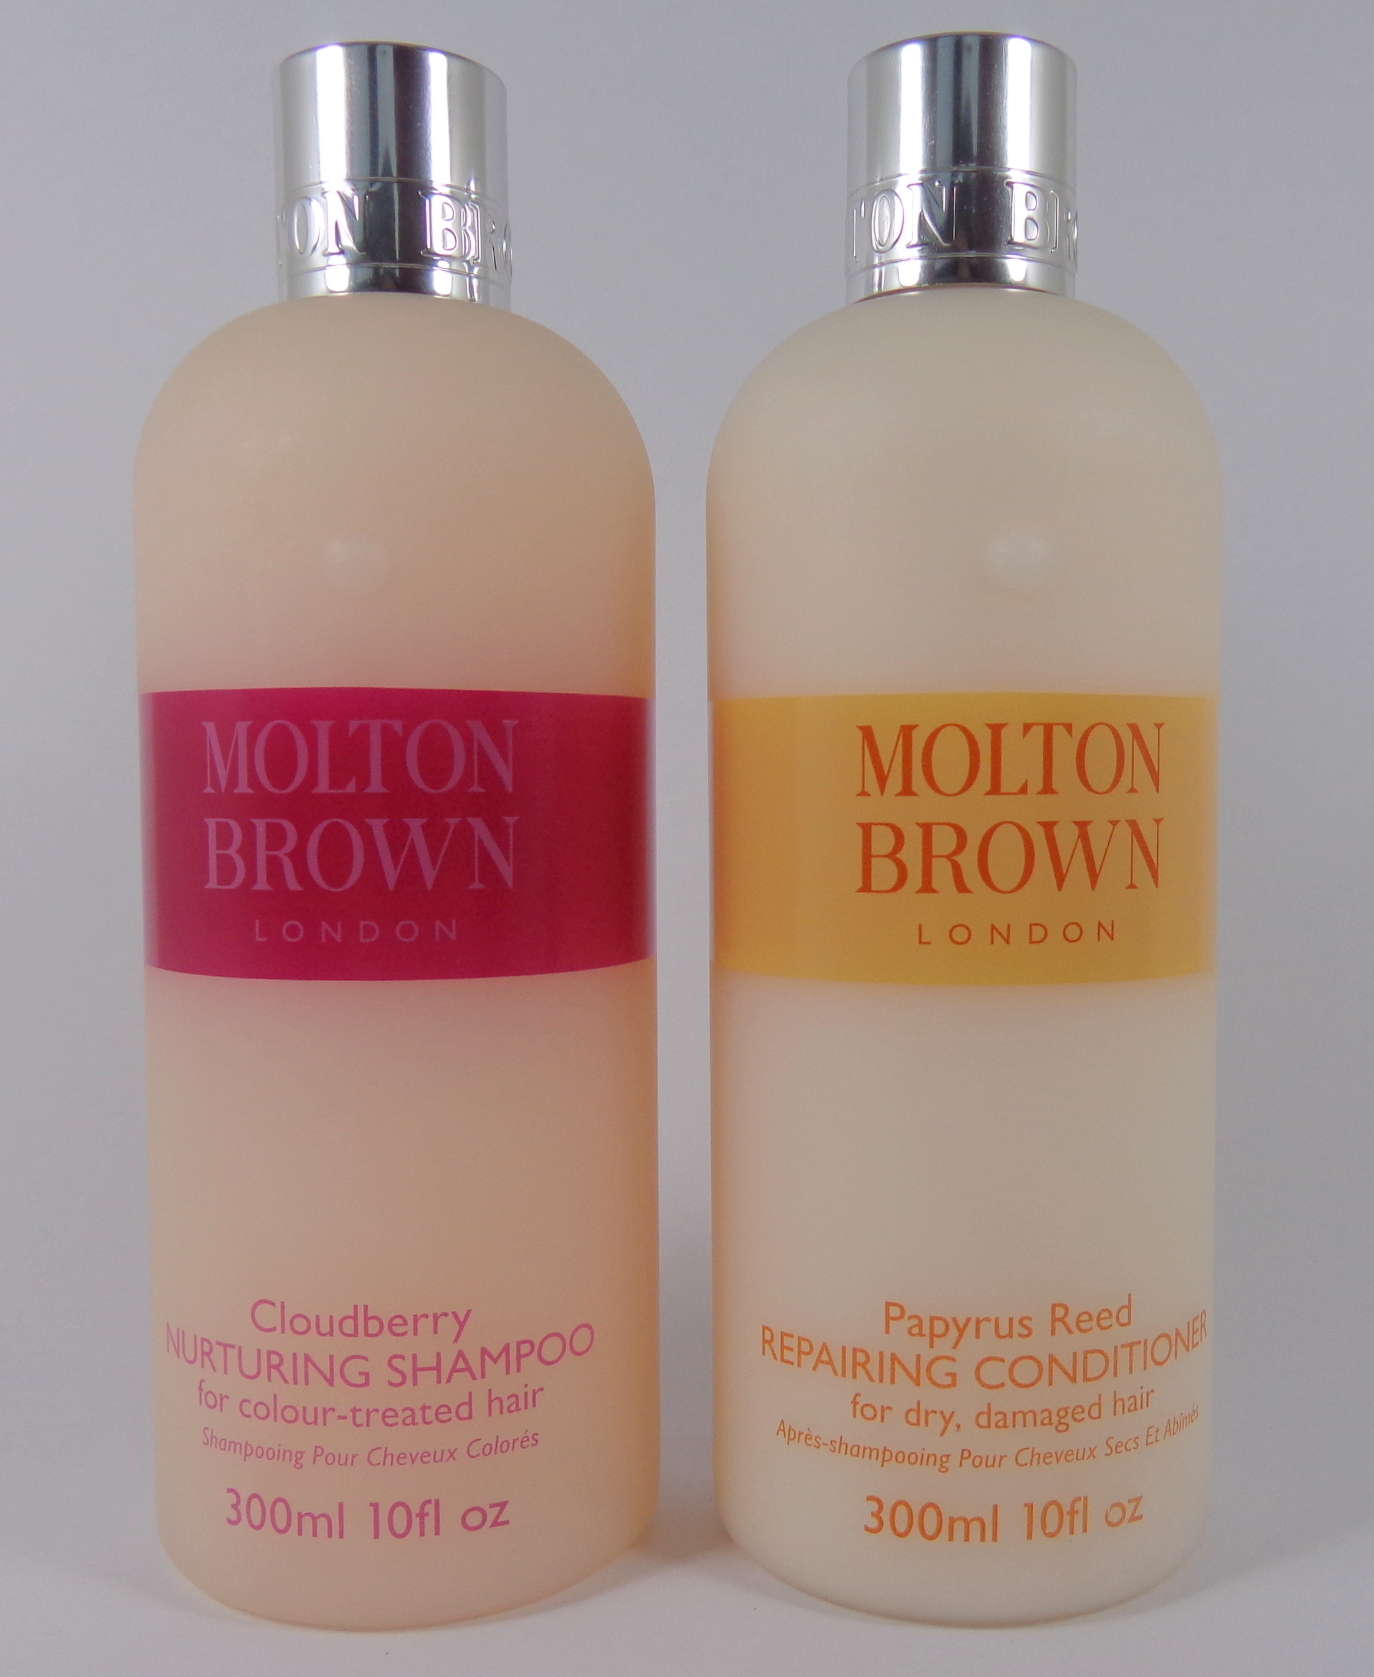 review molton brown shampoo and conditioner my highest self molton brown shampoo conditioner review